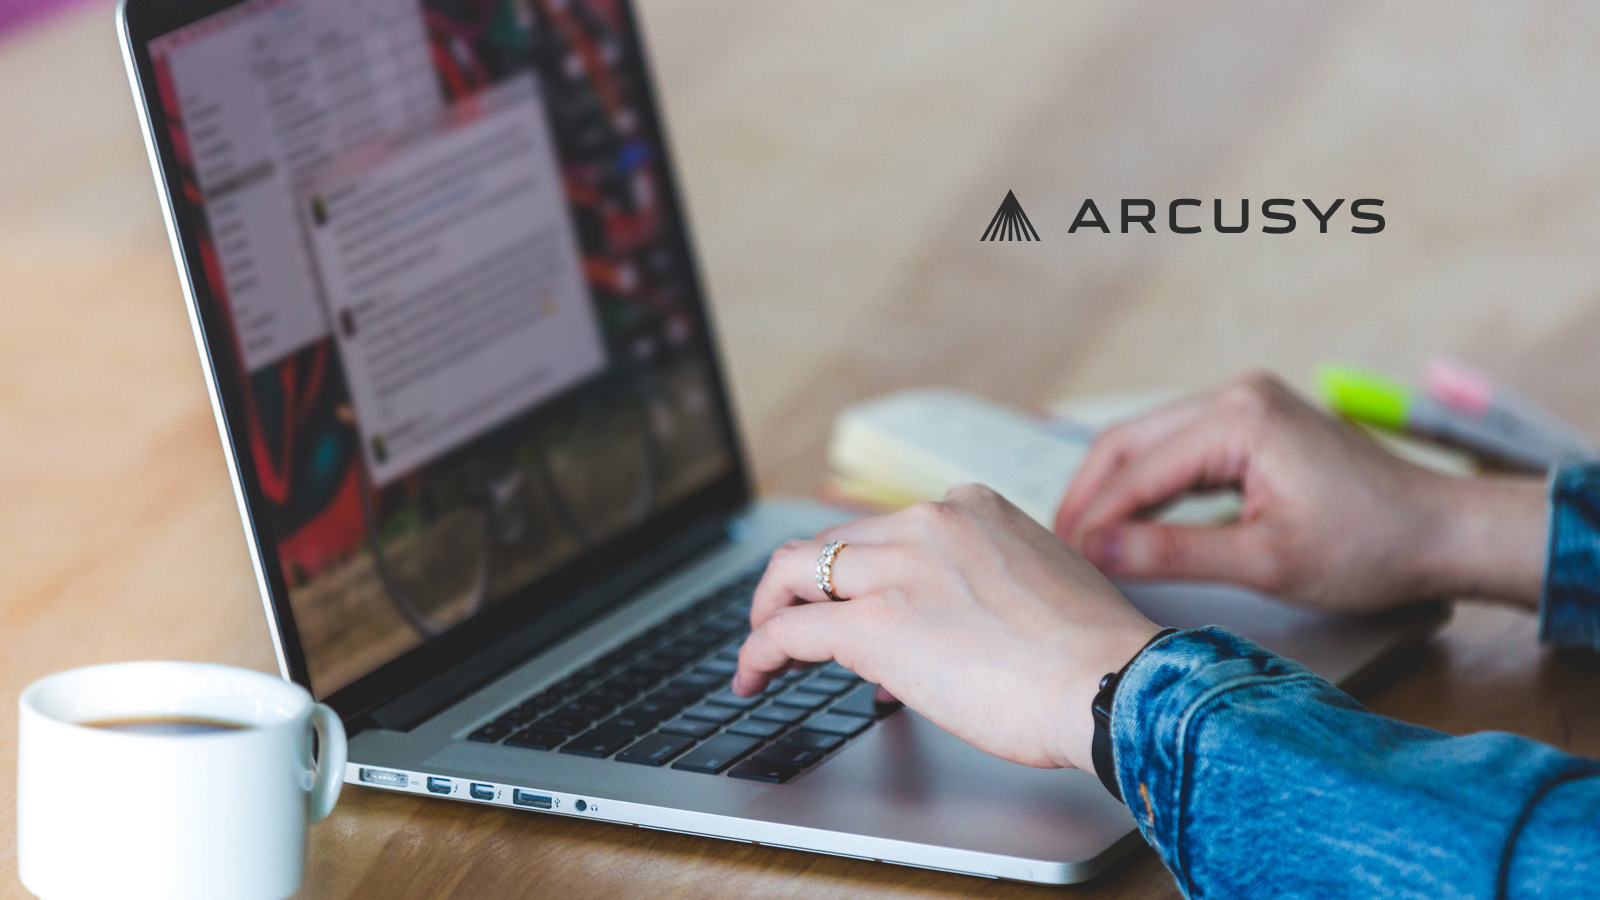 Arcusys partners with Liferay brings digital learning